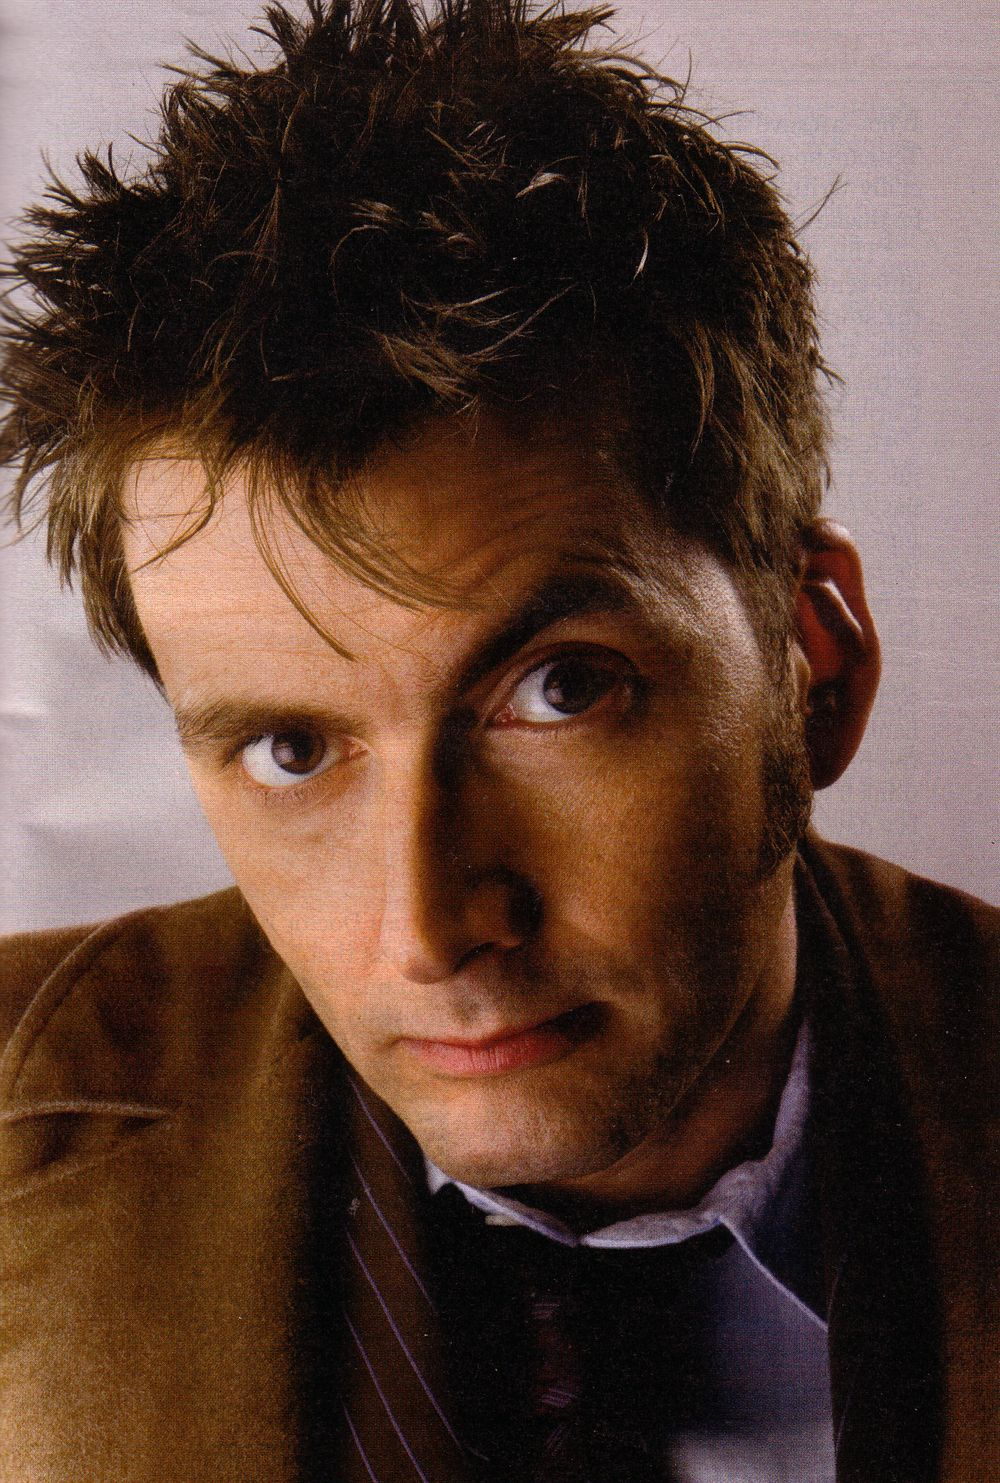 David Tennant (born 1971) David Tennant (born 1971) new photo